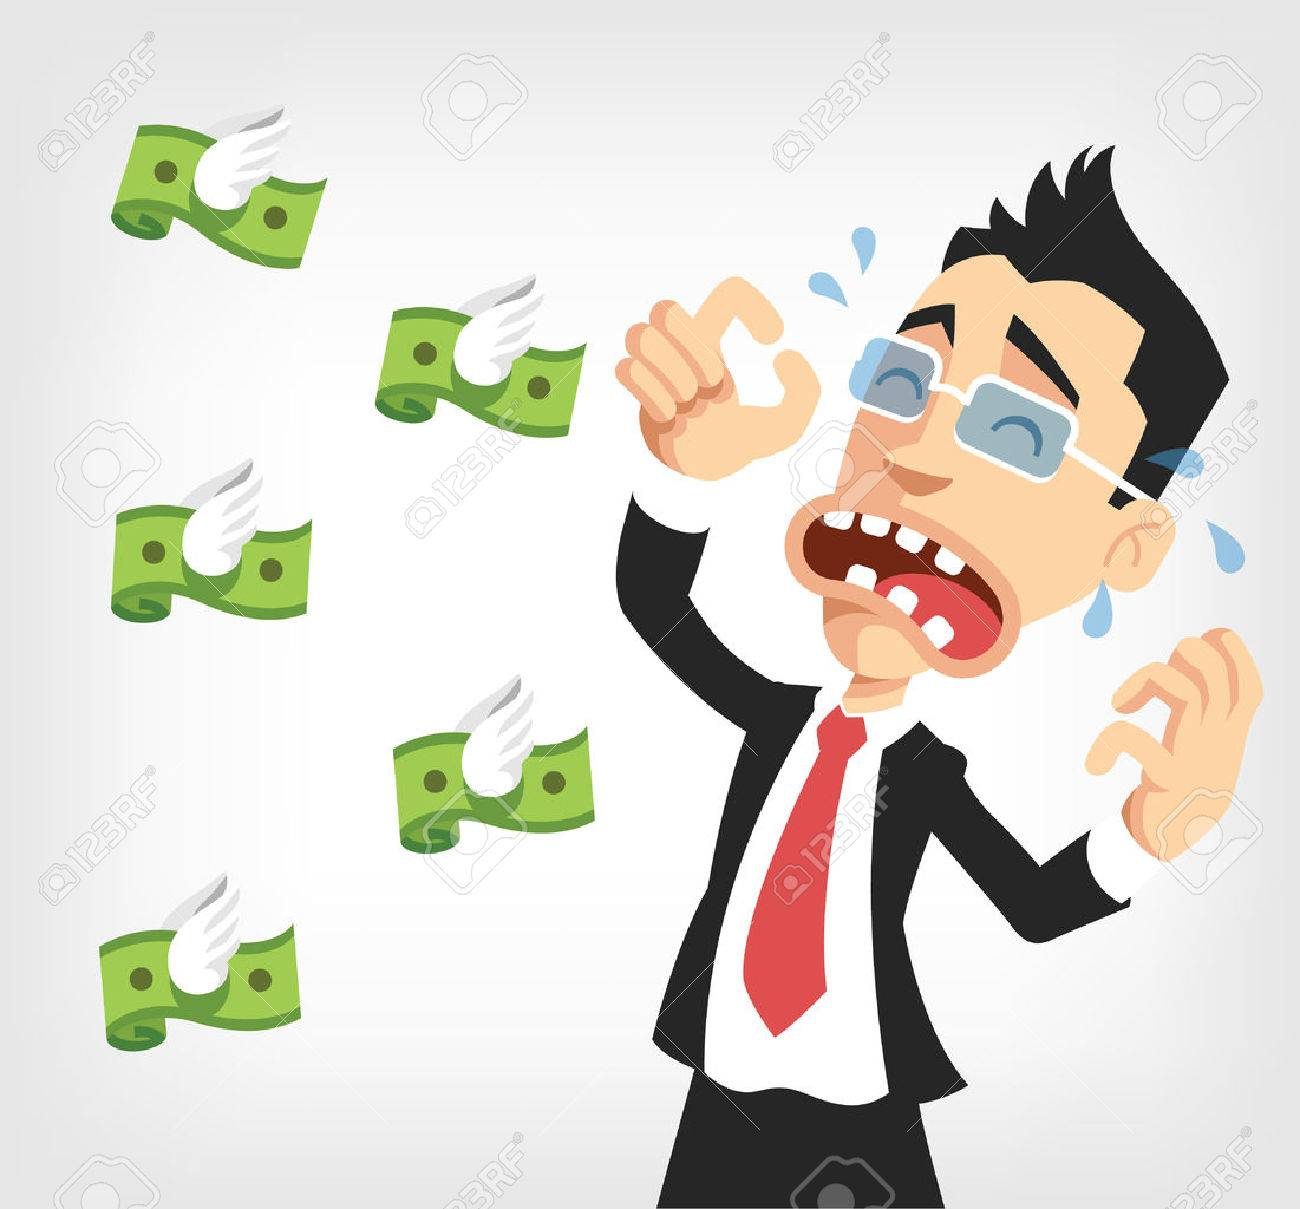 Businessman lose money. Vector flat illustration.